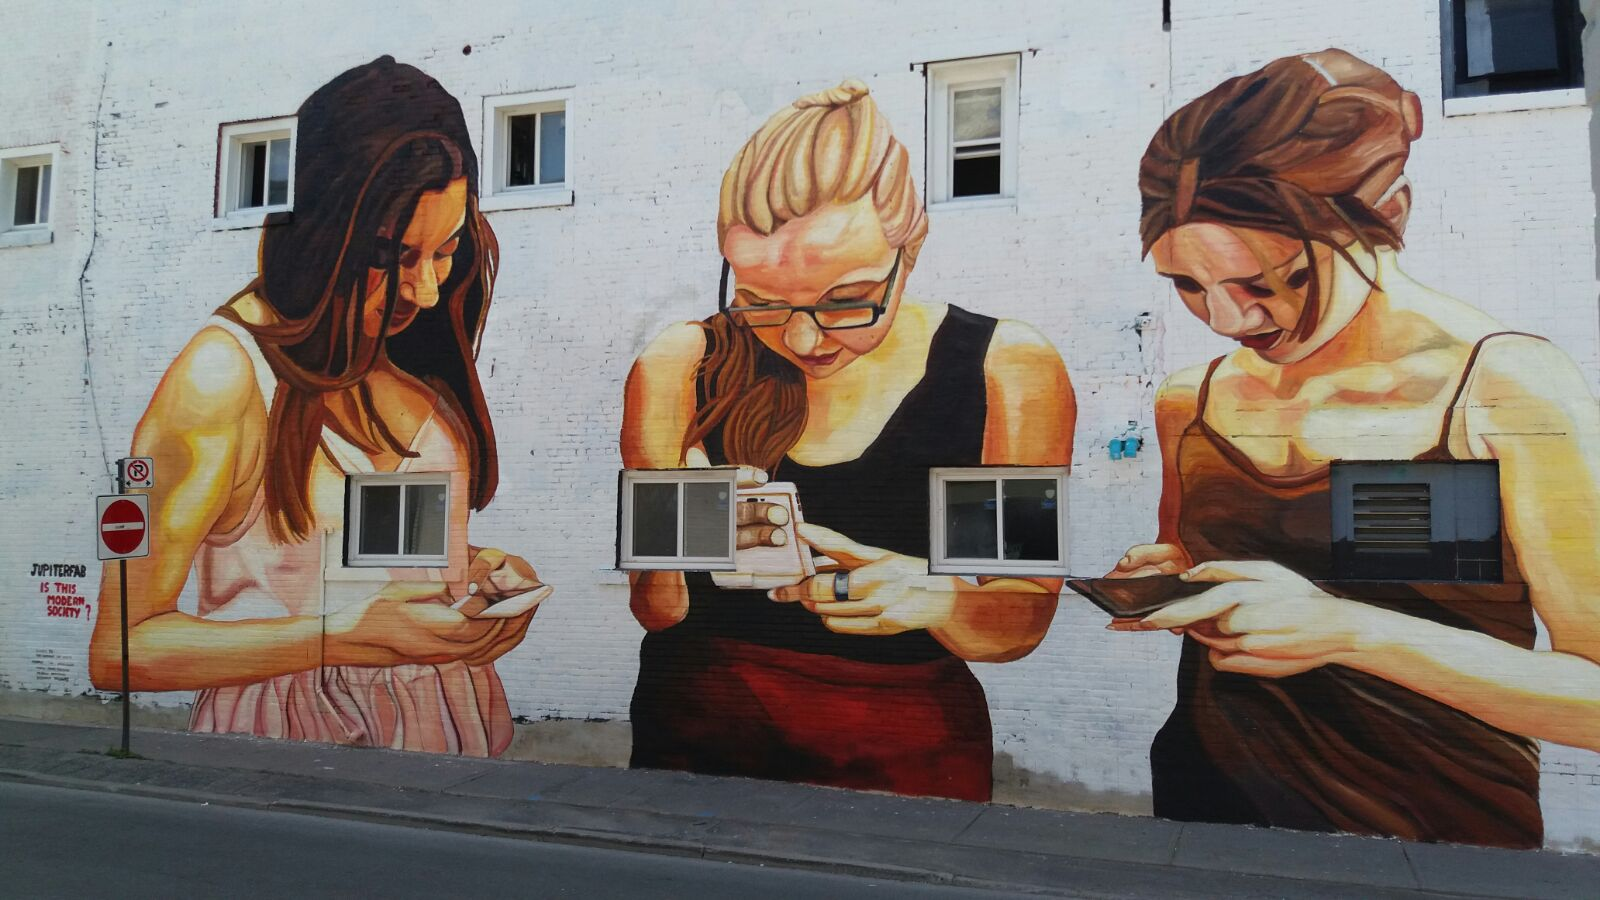 Mural about technology abuse in Canada